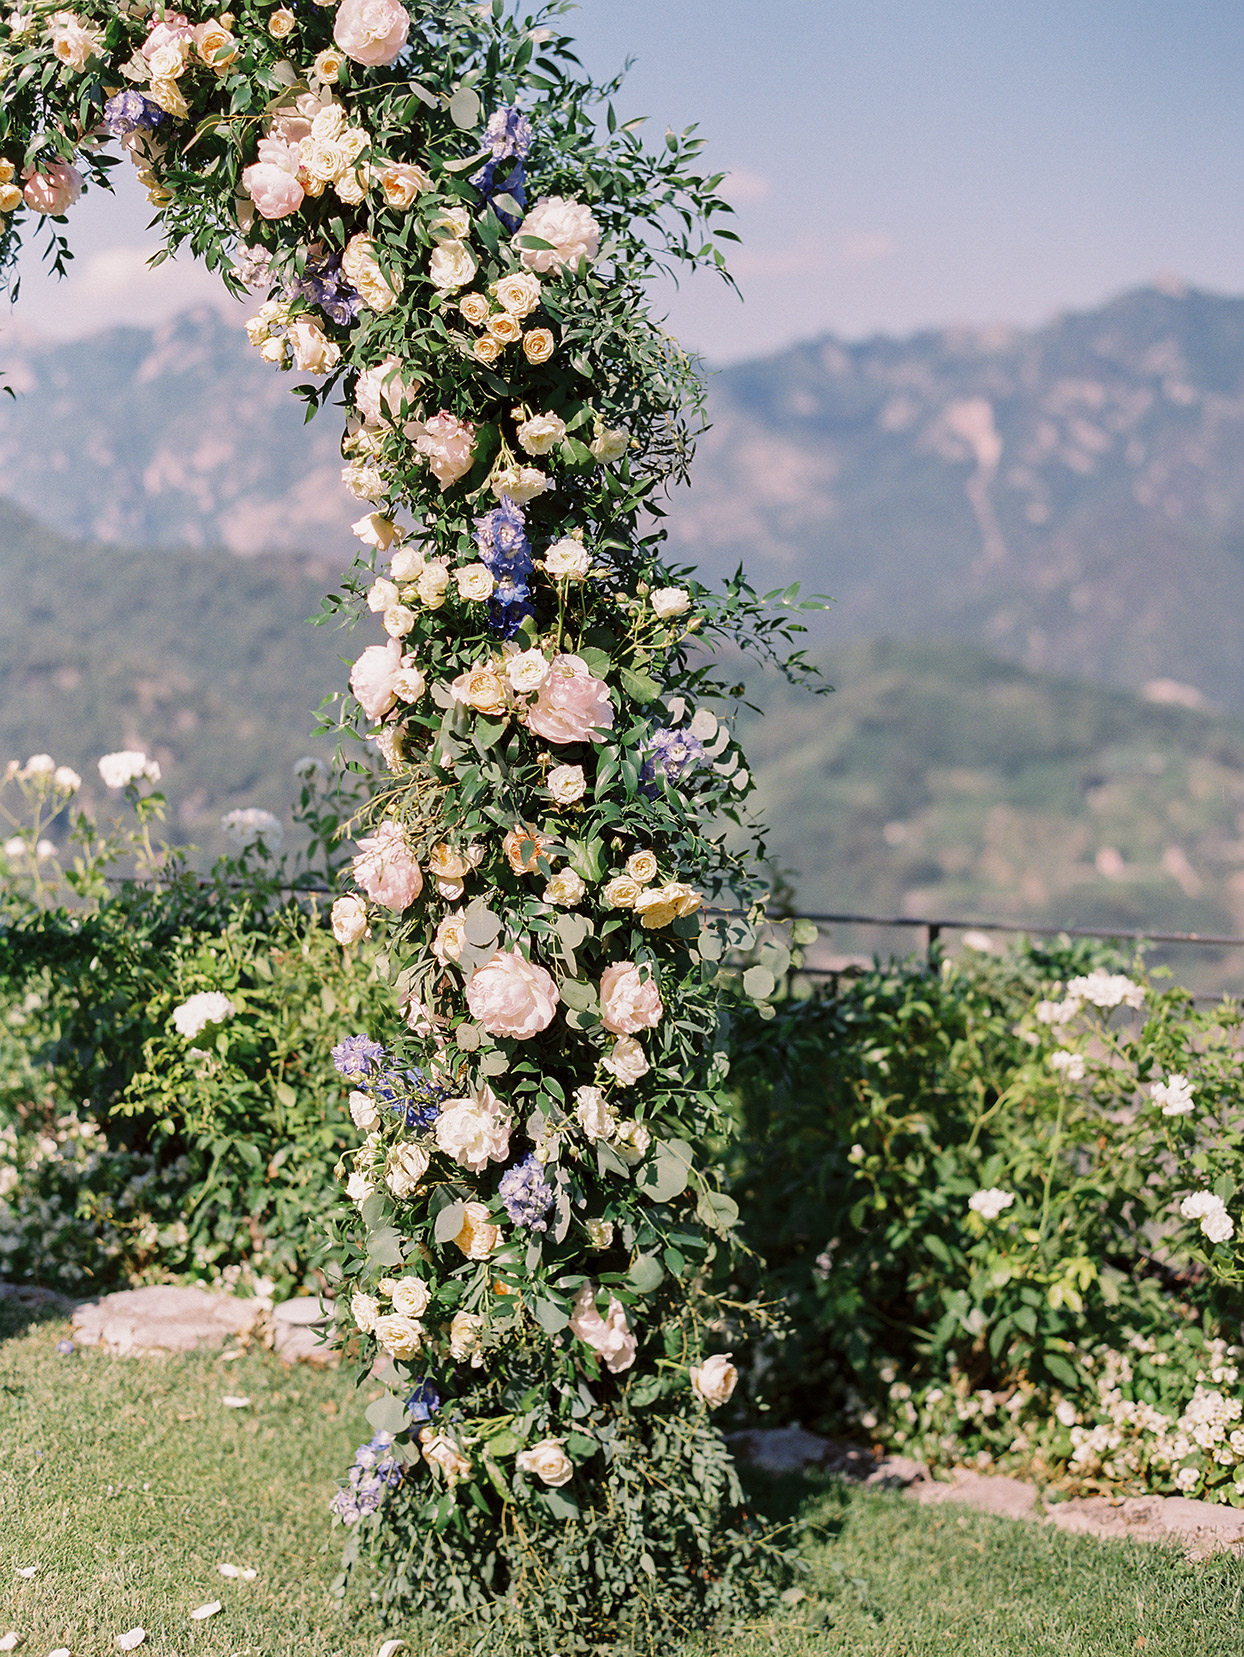 jacqueline david wedding ceremony floral arch overlooking mountains